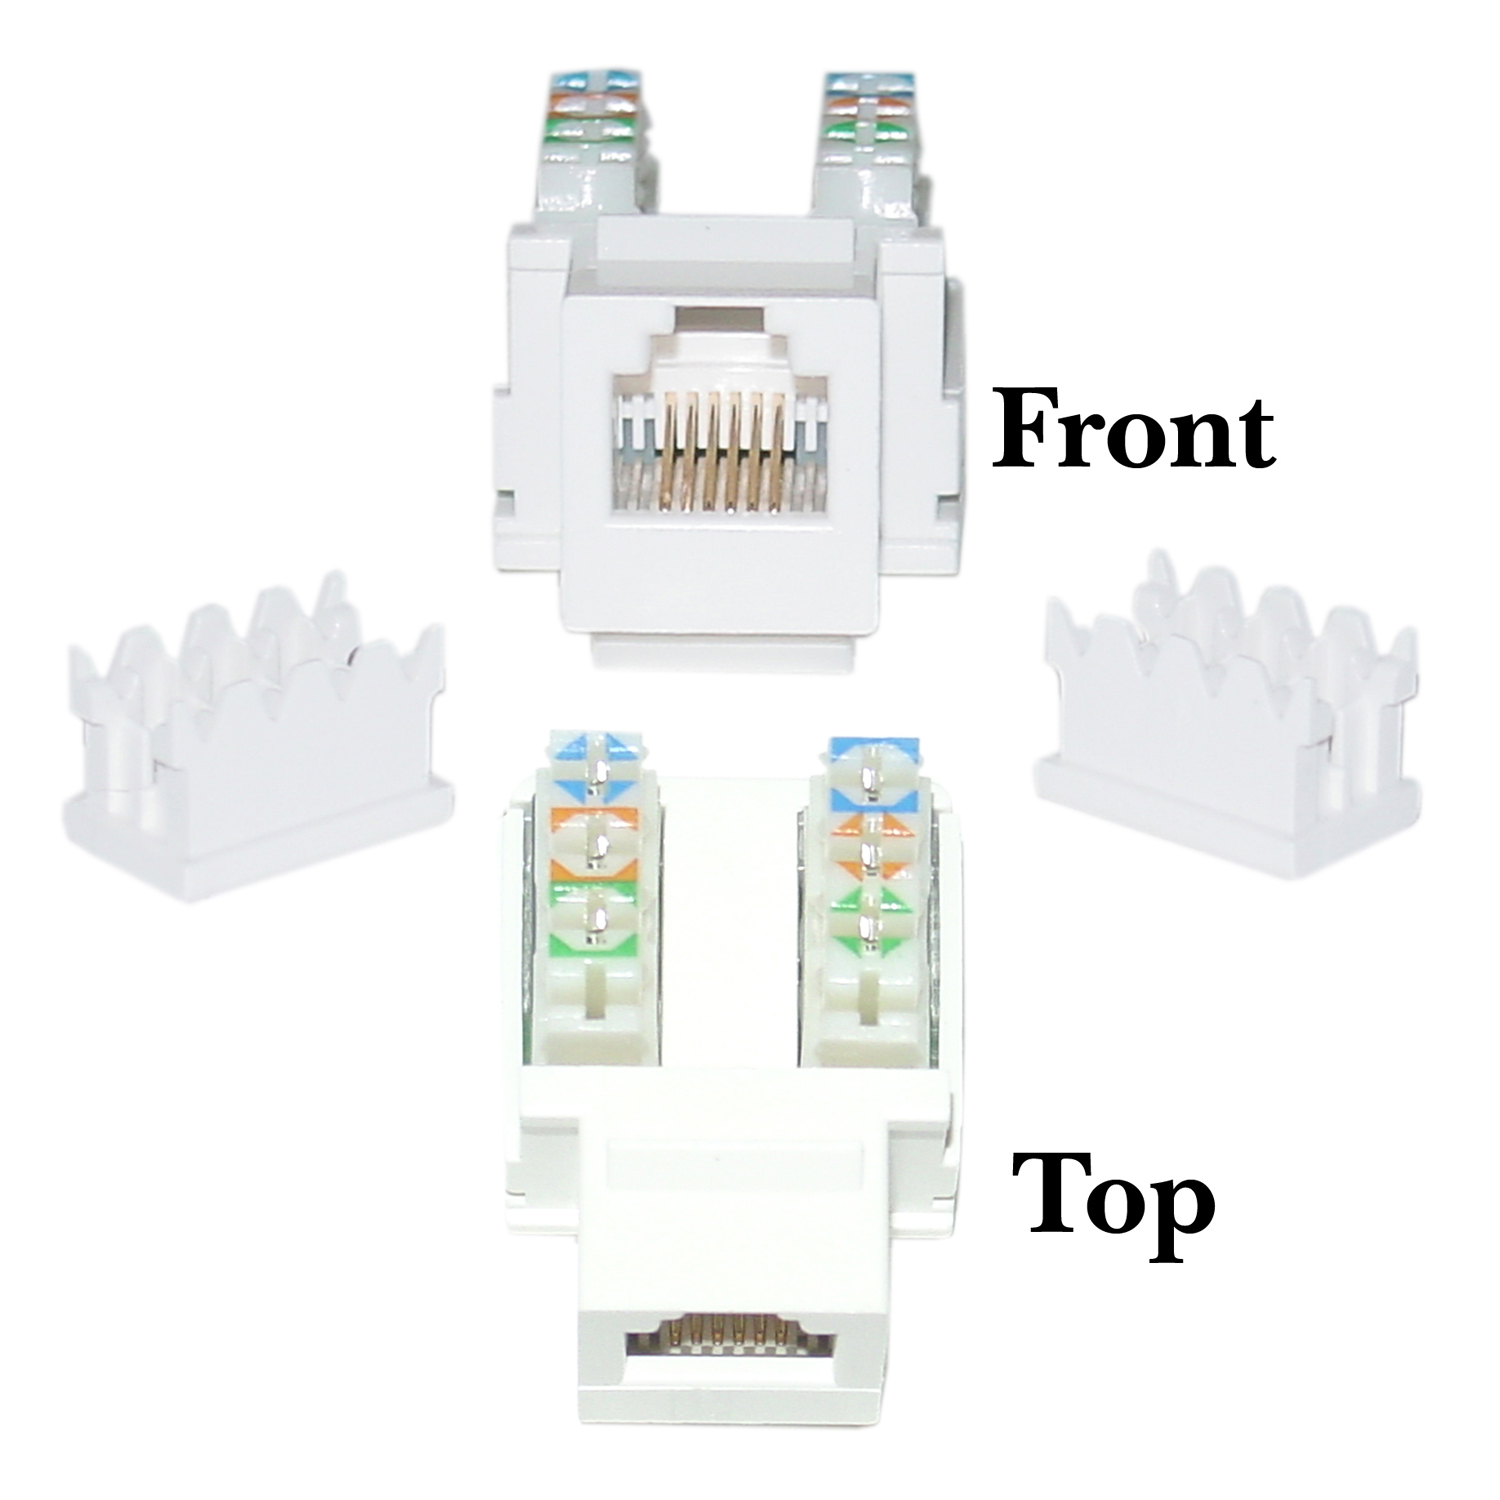 Offex Keystone Insert, White, Phone / Data Jack, RJ11 / RJ12 Female to 110 Type Punch Down